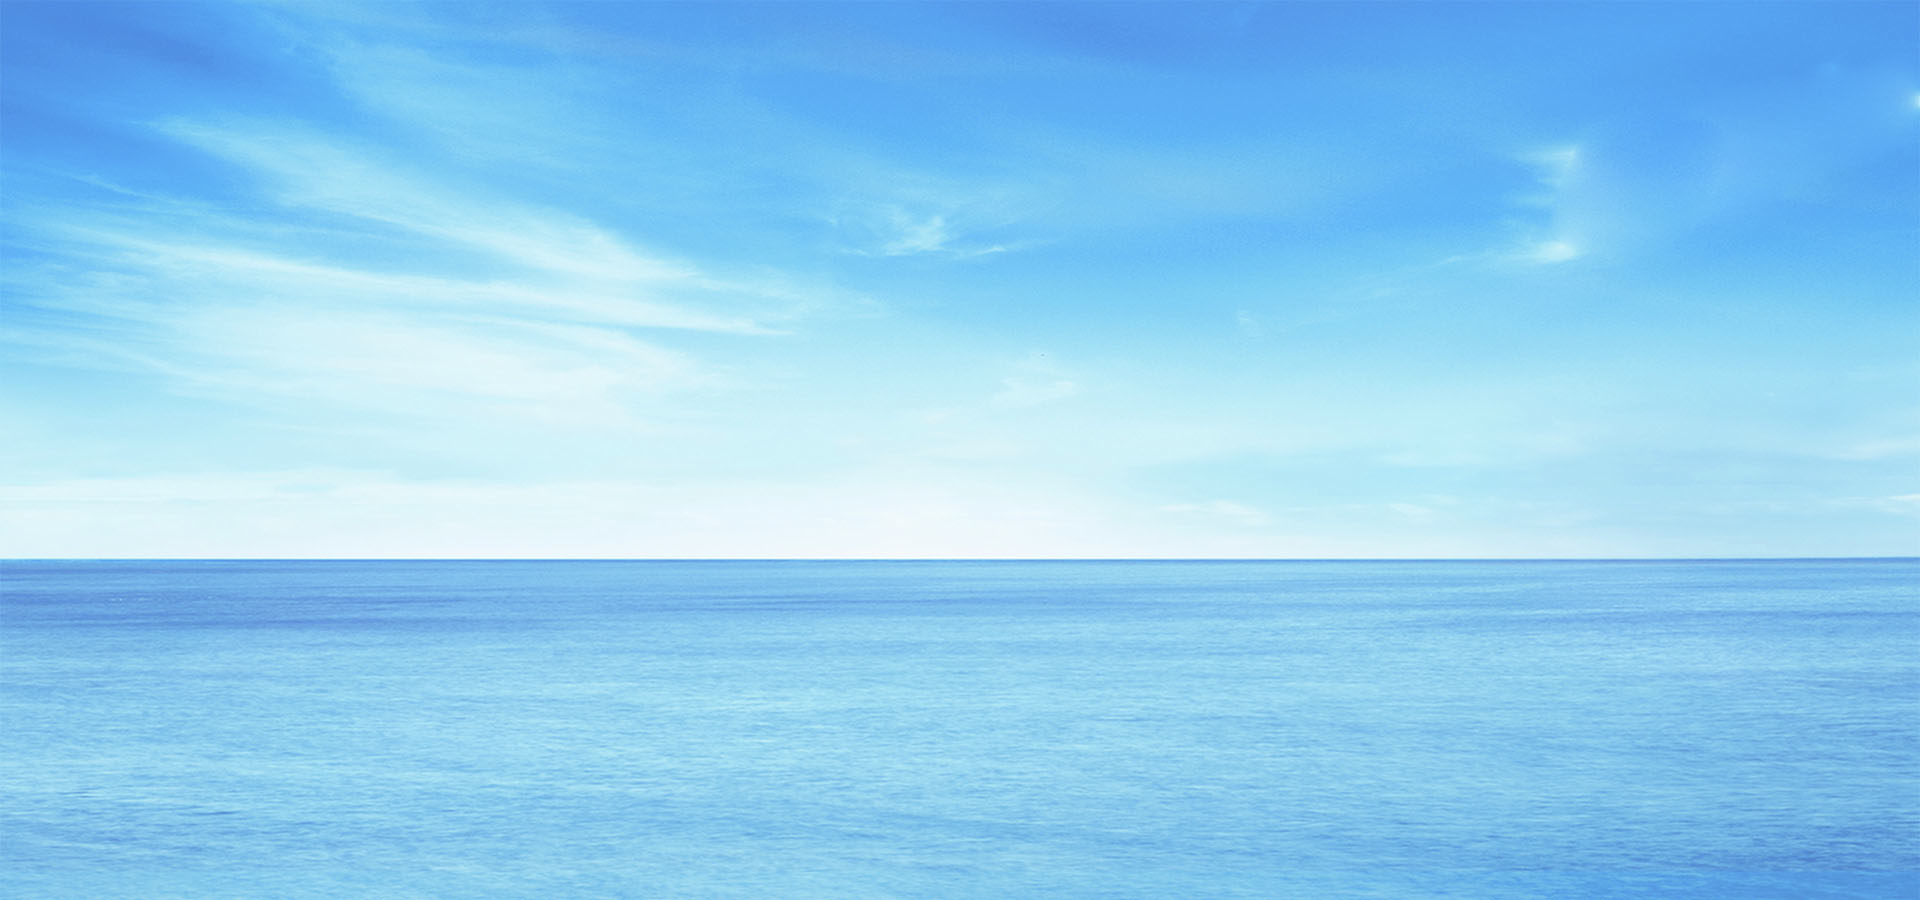 sky and sea background  blue  sea  sky background image